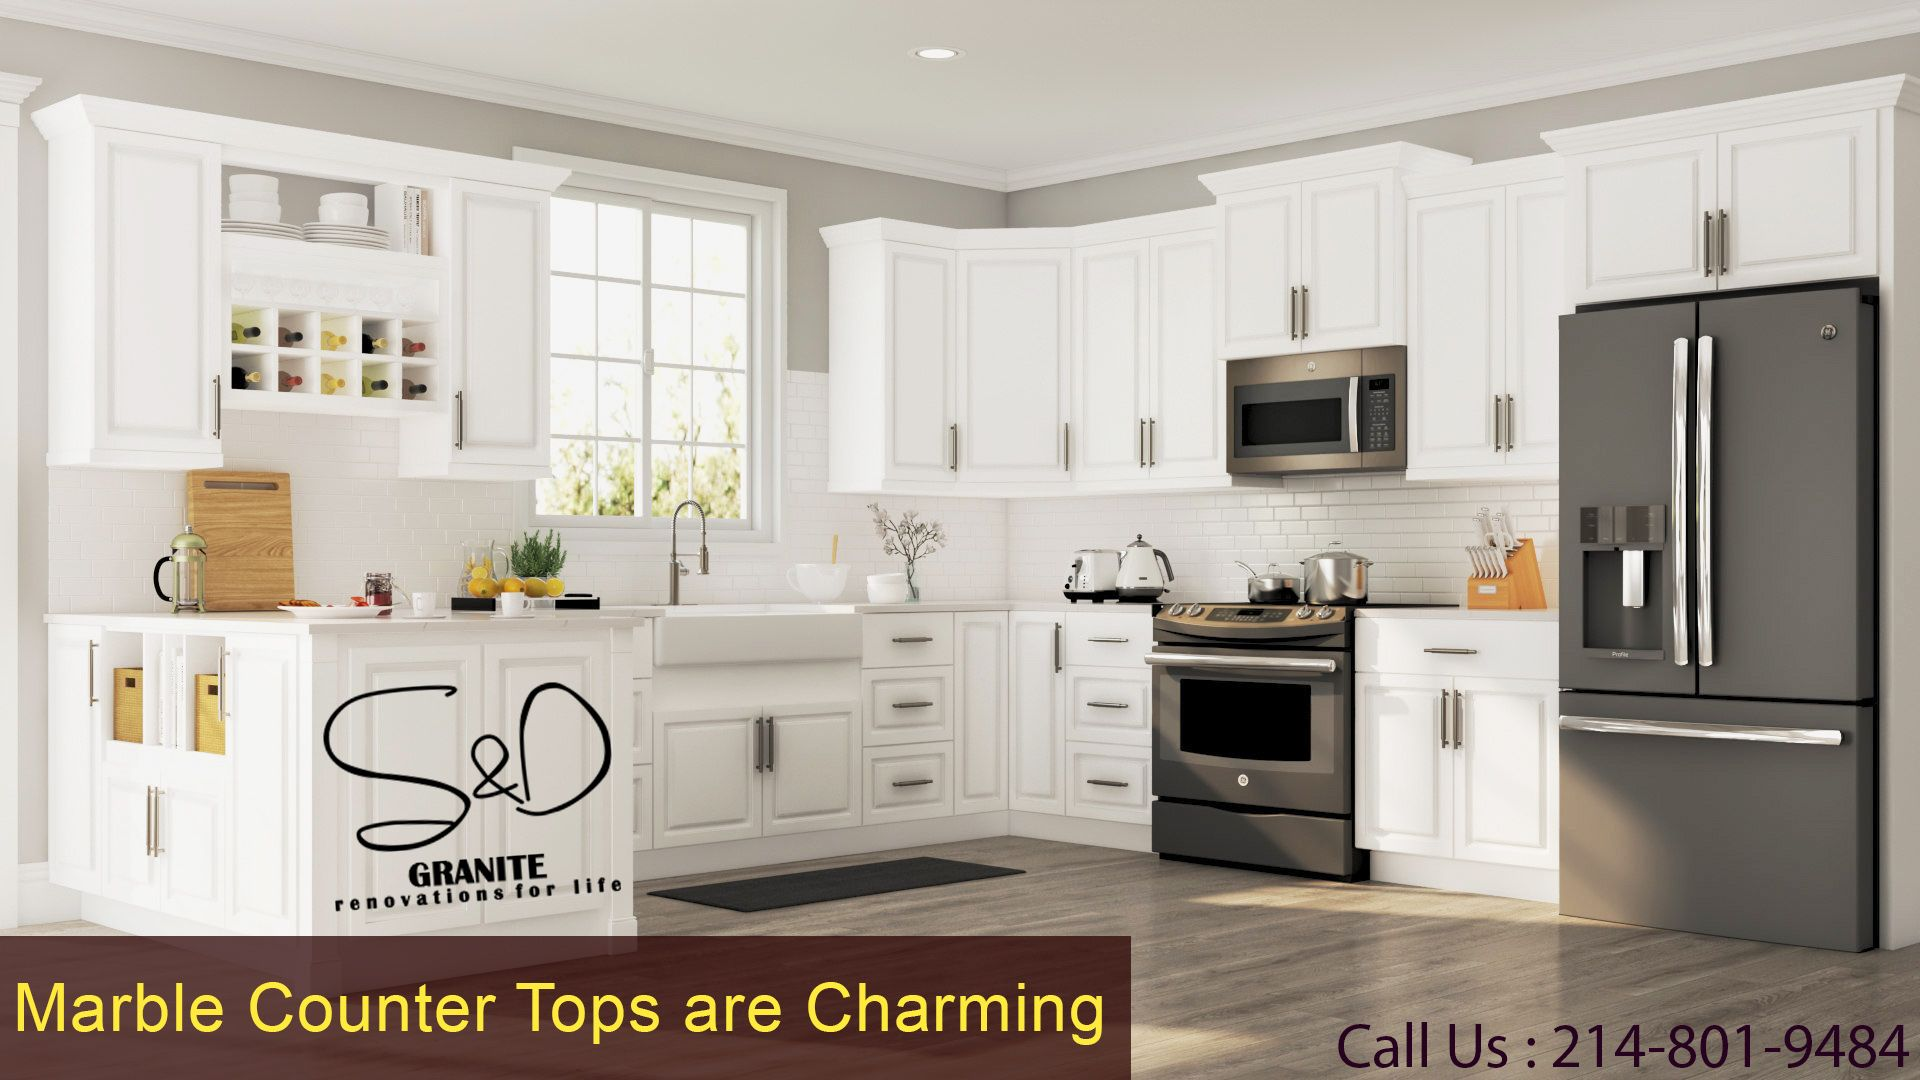 Contact S &D Granite today for kitchen & bathroom ...